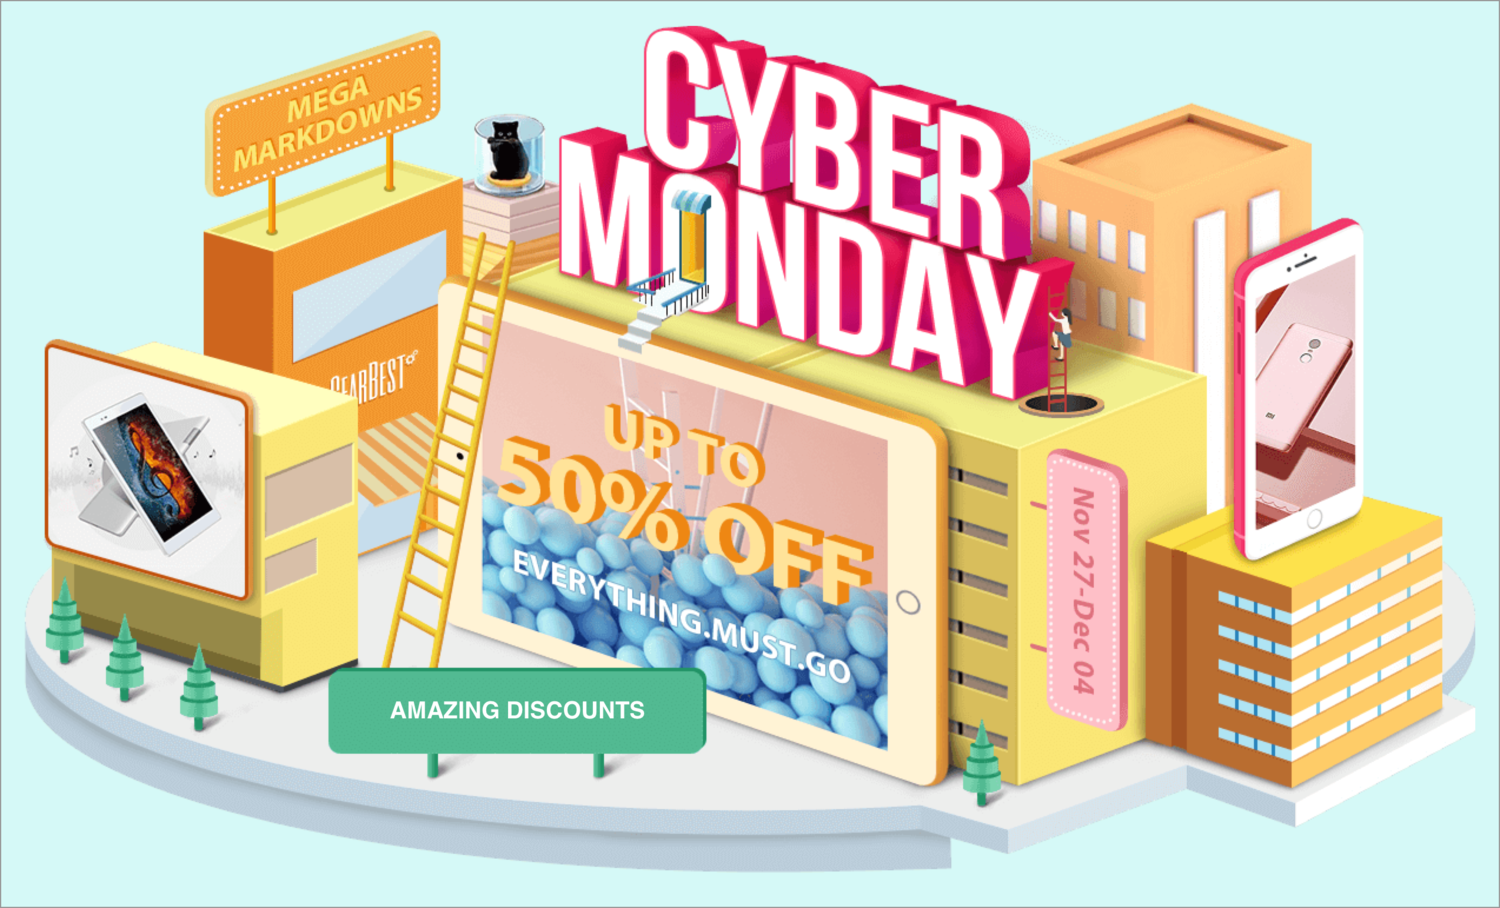 Cyber Monday 2017: Top Tech Gadgets at Killer Prices